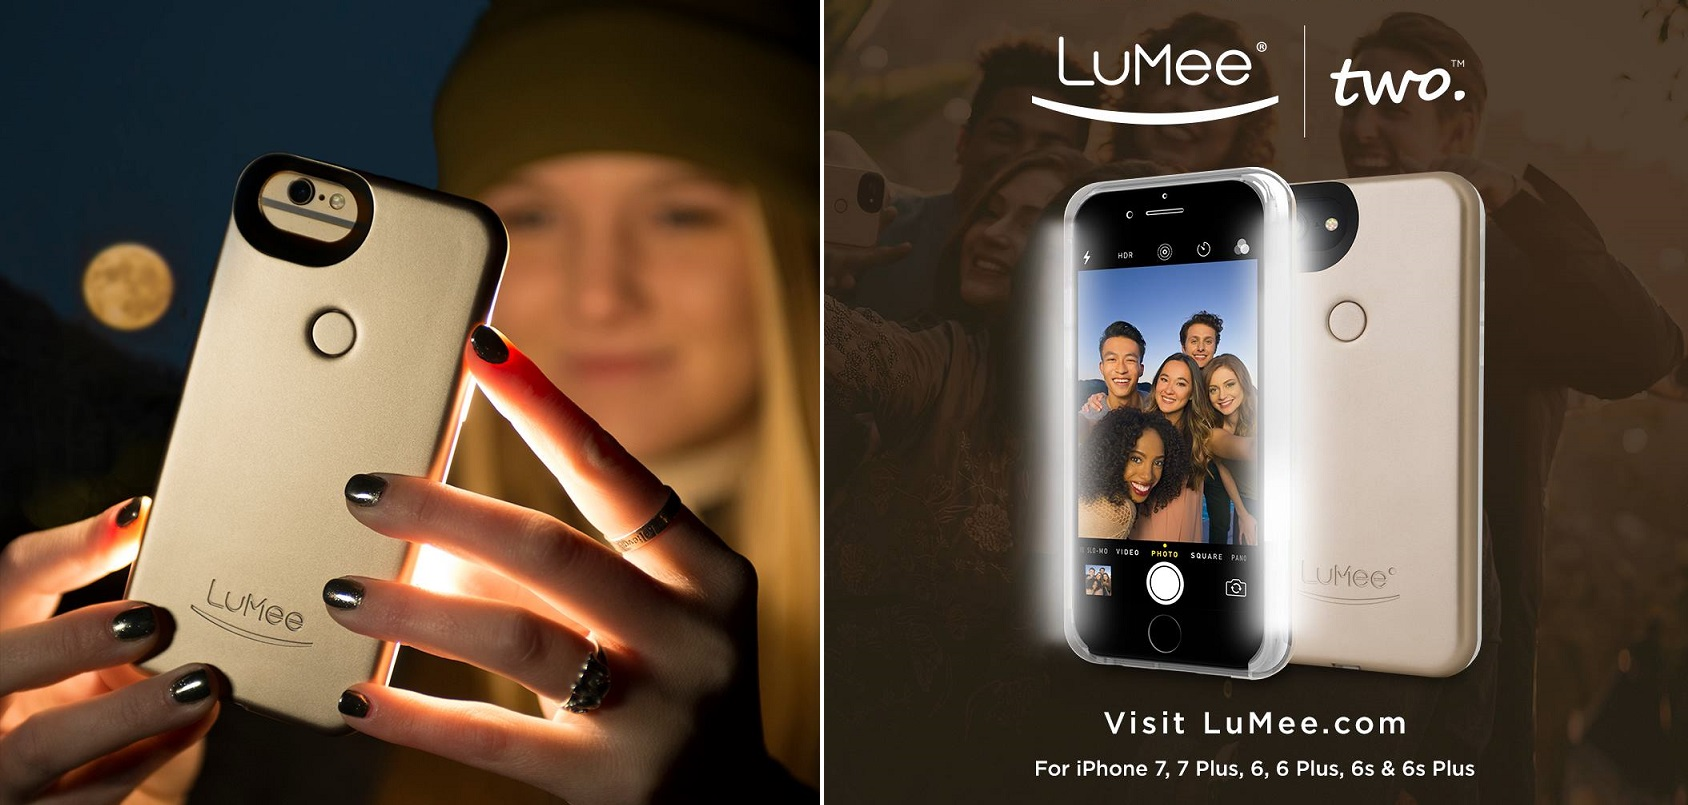 Lumee Two